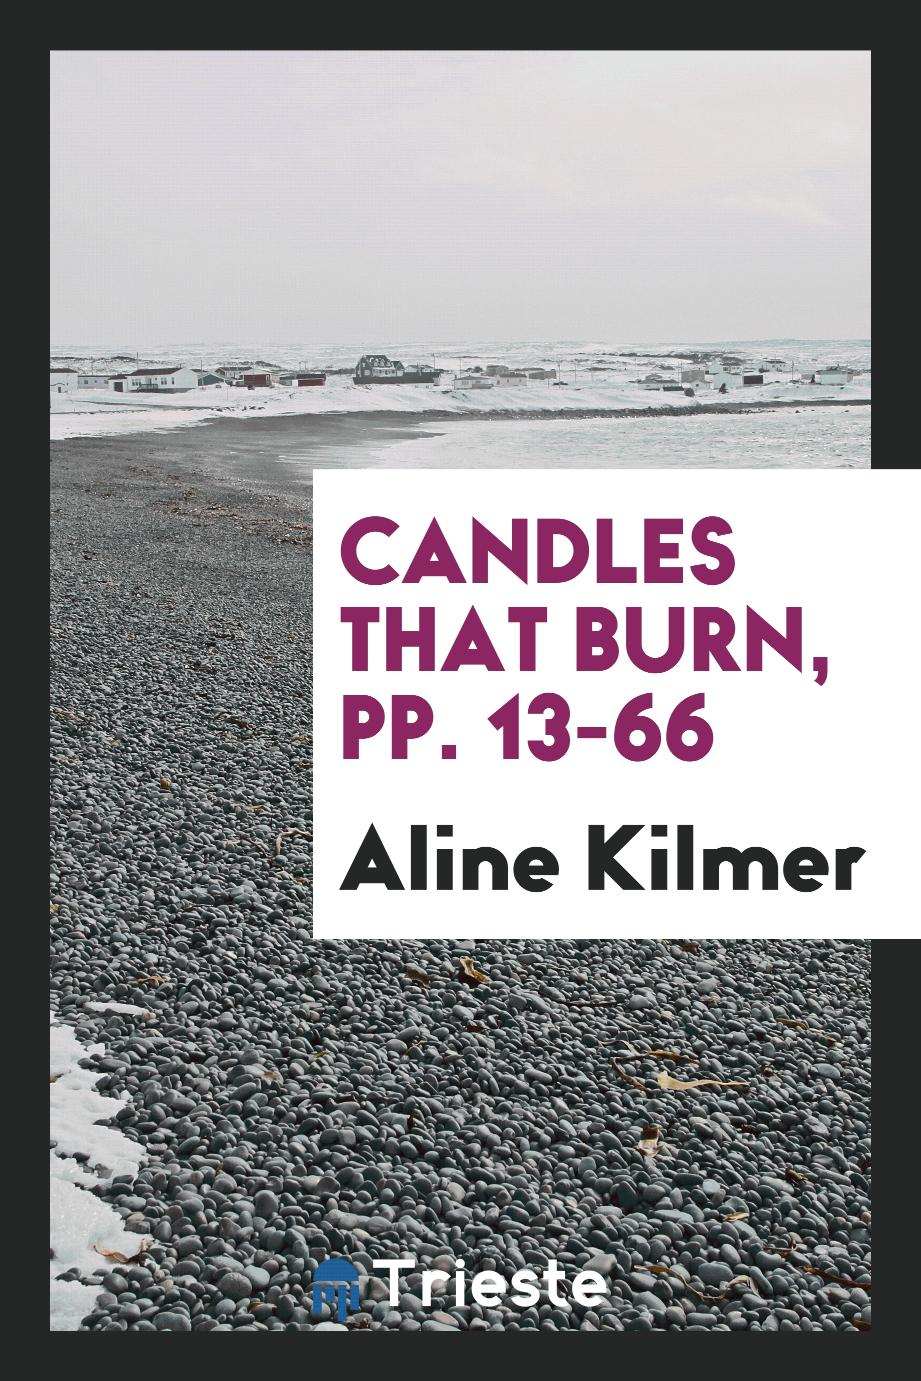 Candles that Burn, pp. 13-66